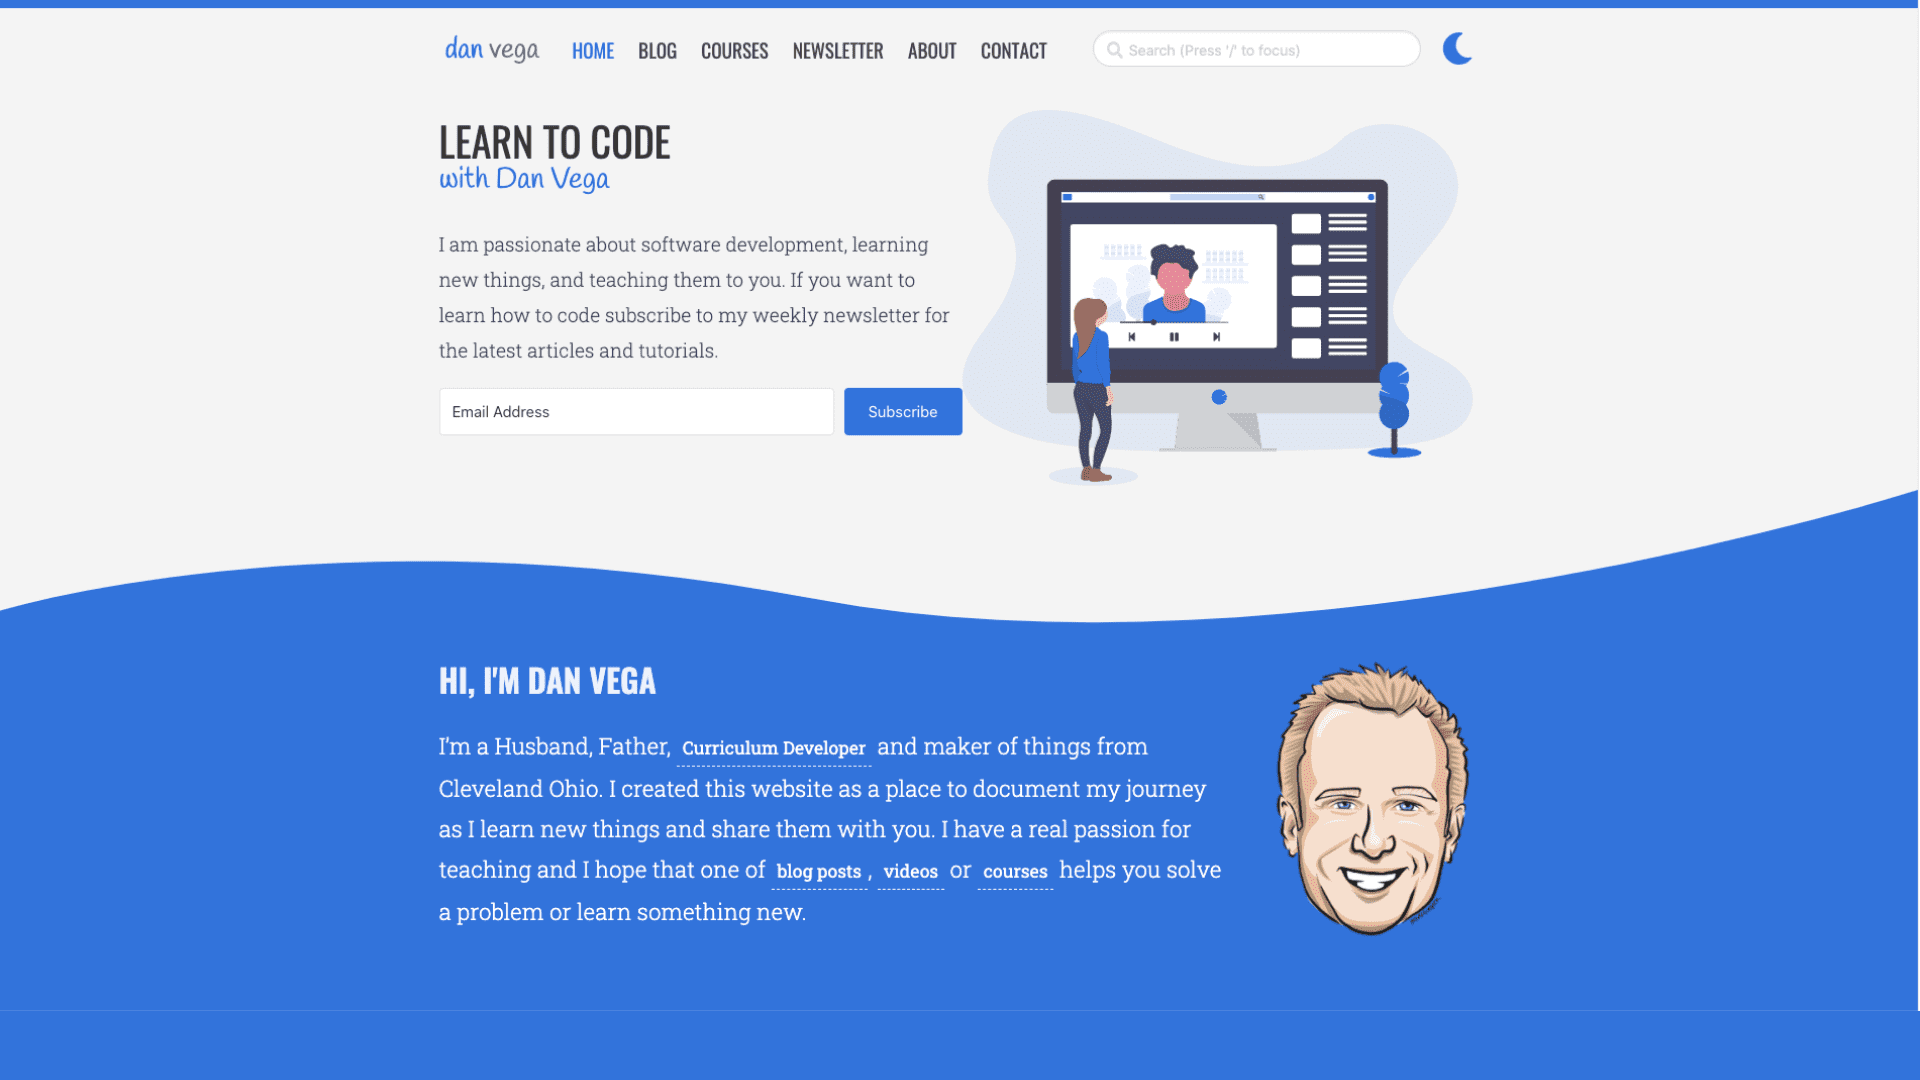 Lessons learned from redesigning my website